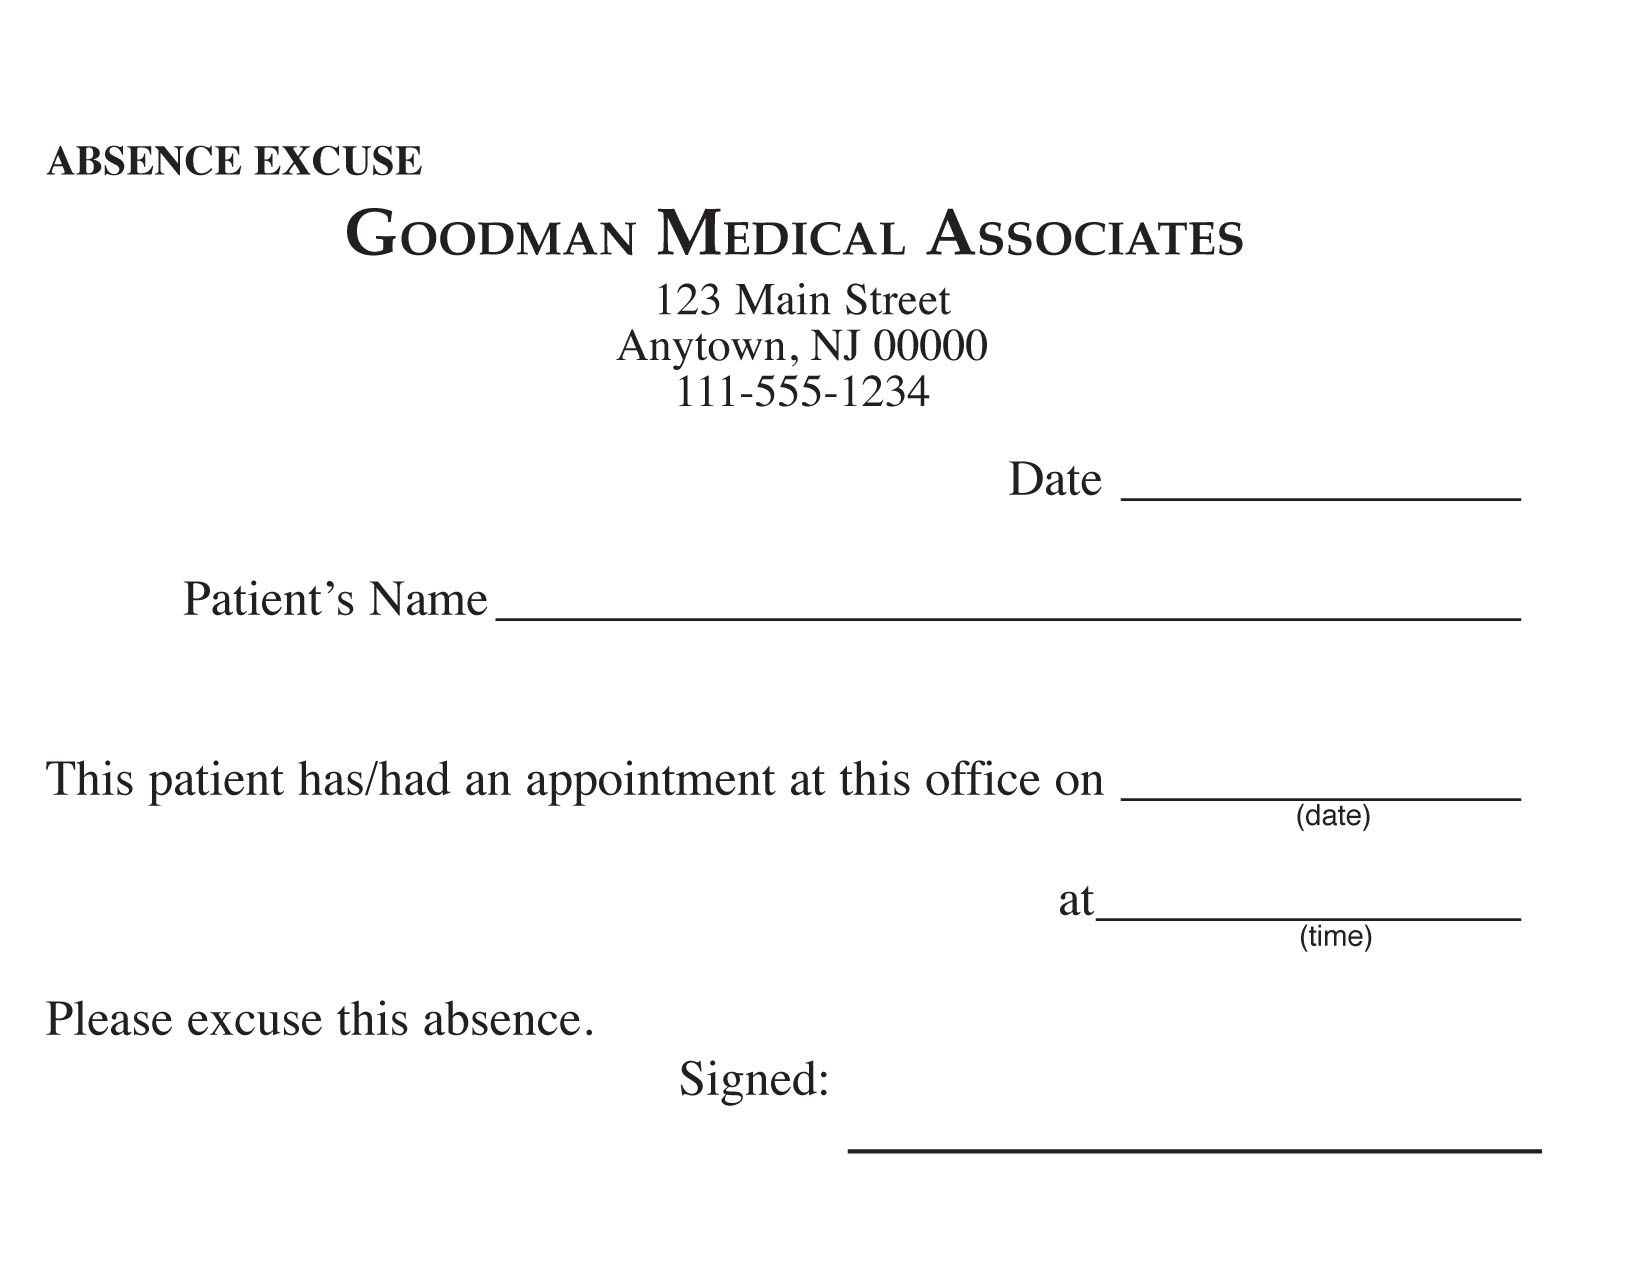 Blank Printable Doctor Excuse Form | Keskes Printing - Mds - Free Printable Doctors Excuse For Work